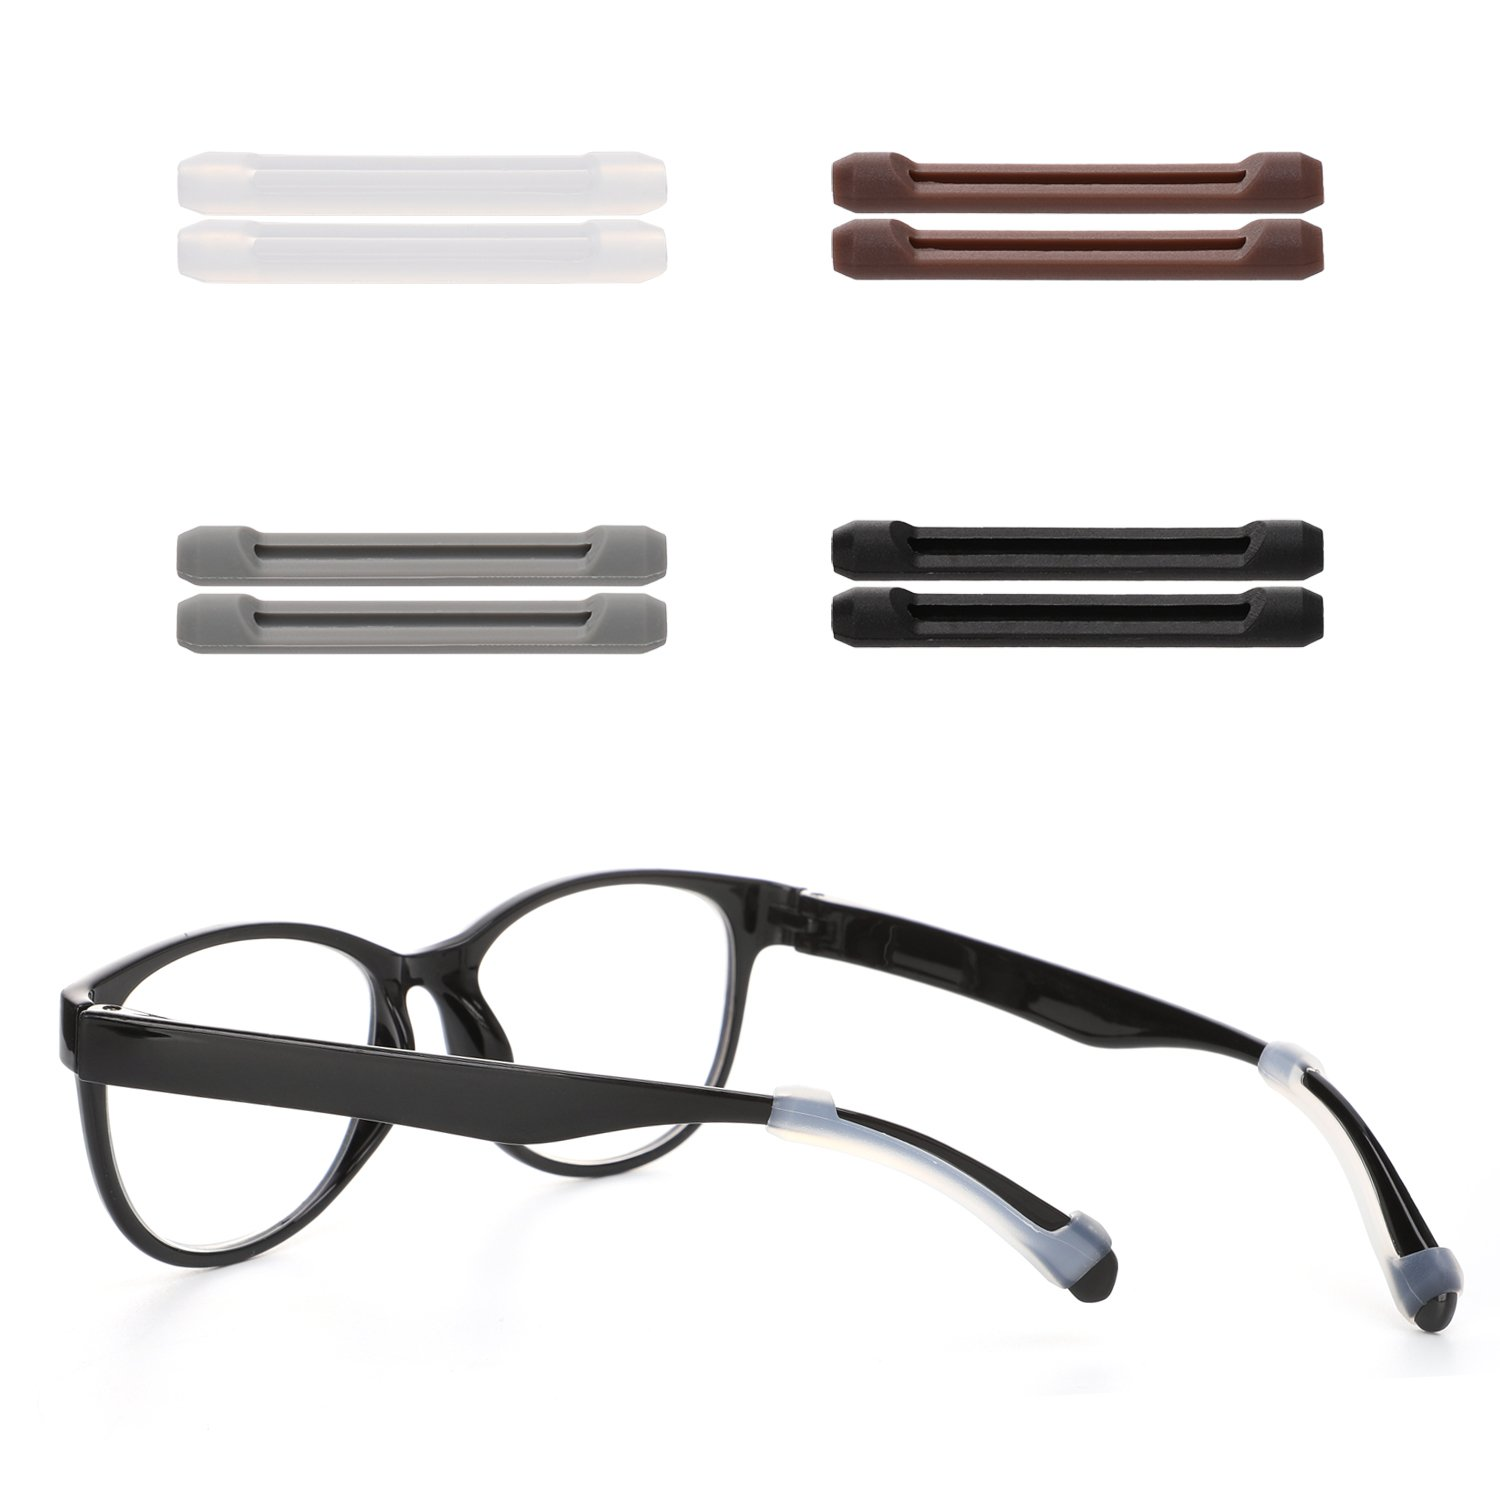 Anti-Slip Ear Hook Holder For Glasses Piece Eyeglass Temple Tip Eyewear Sleeve Retainer Hifot 8 Pairs Silicon Ear Pads for Eyegalsses